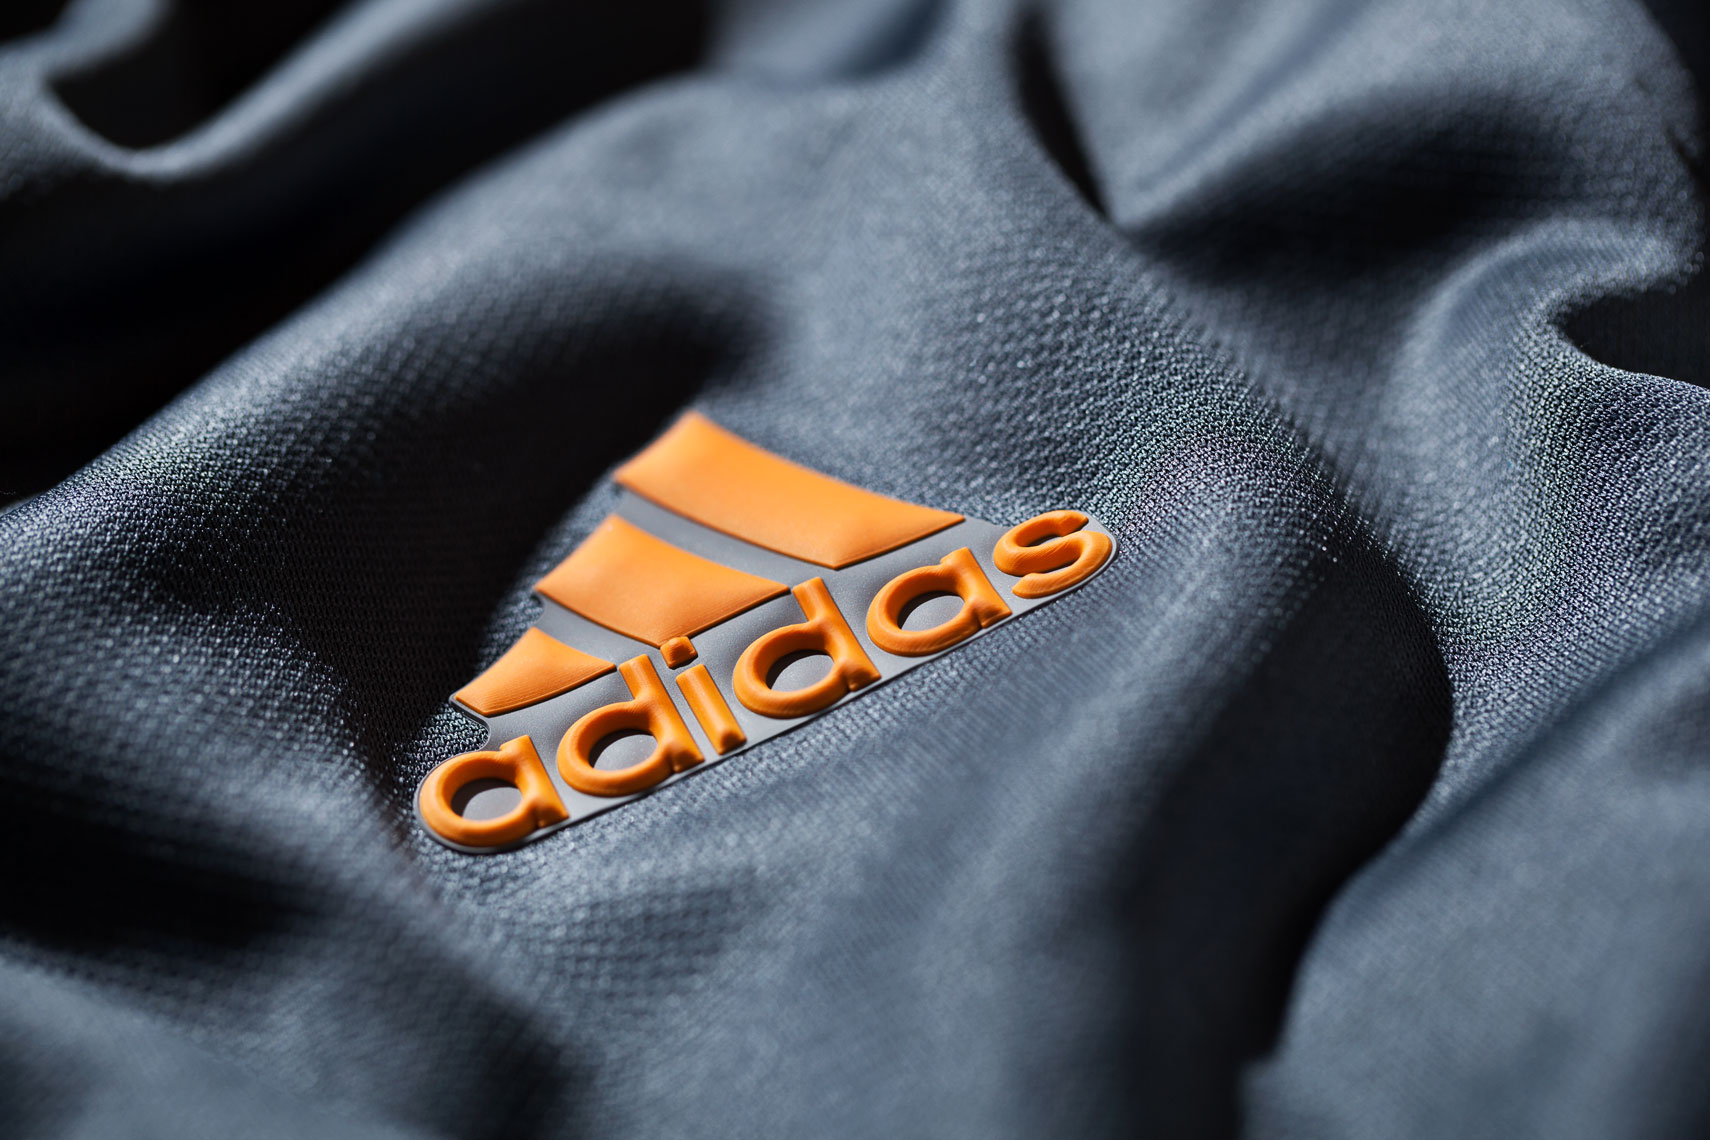 Product Photography Gear Adidas Quarter Zip Mens Athletic Pullover Gray Orange Logo